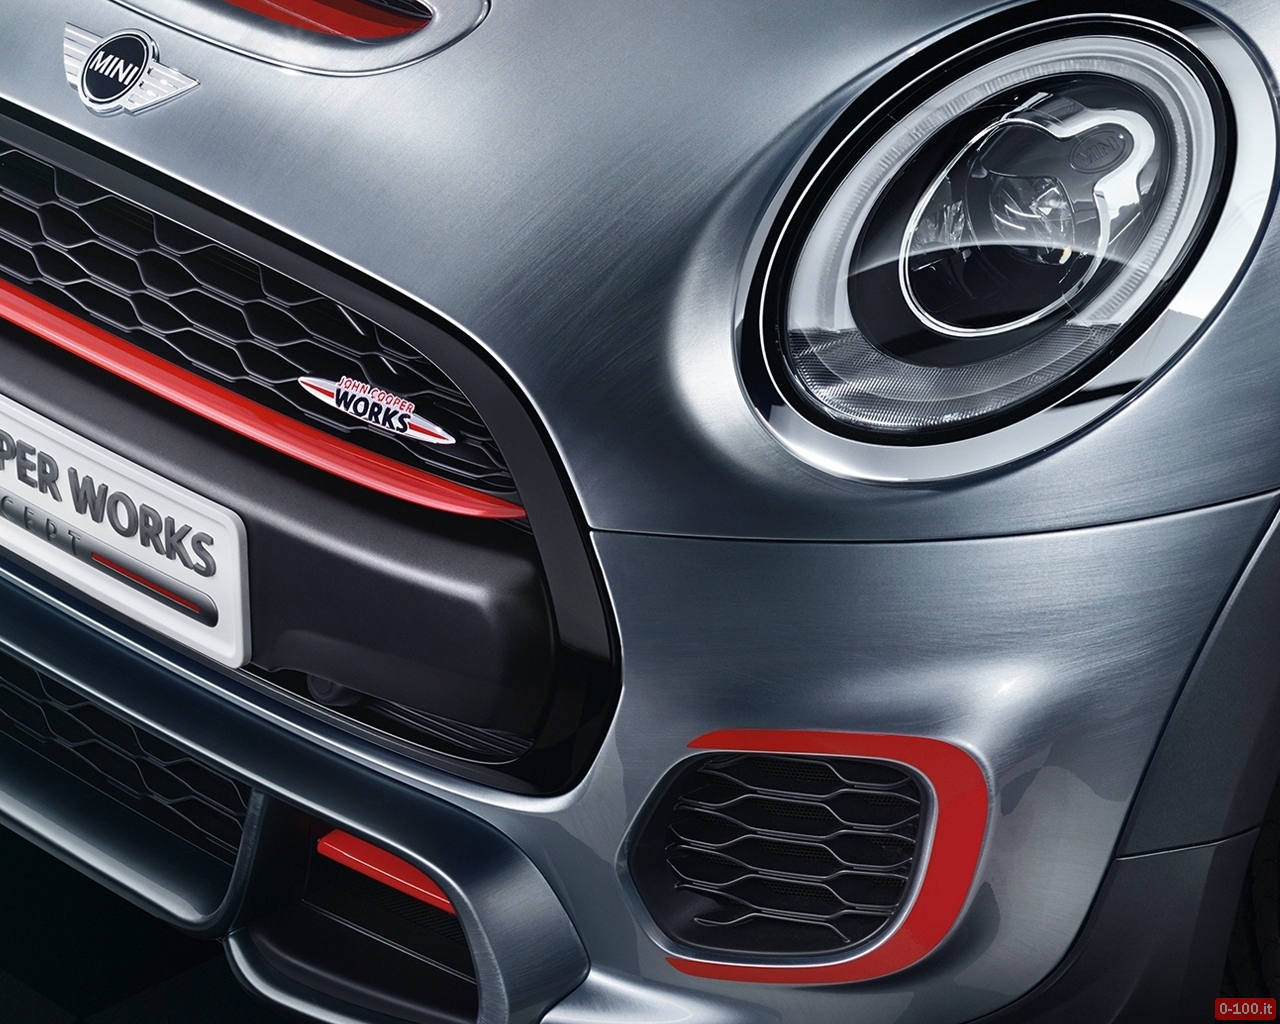 Salone-Detroit-NAIAS-2014-MINI-John-Cooper-Works-Concept_1